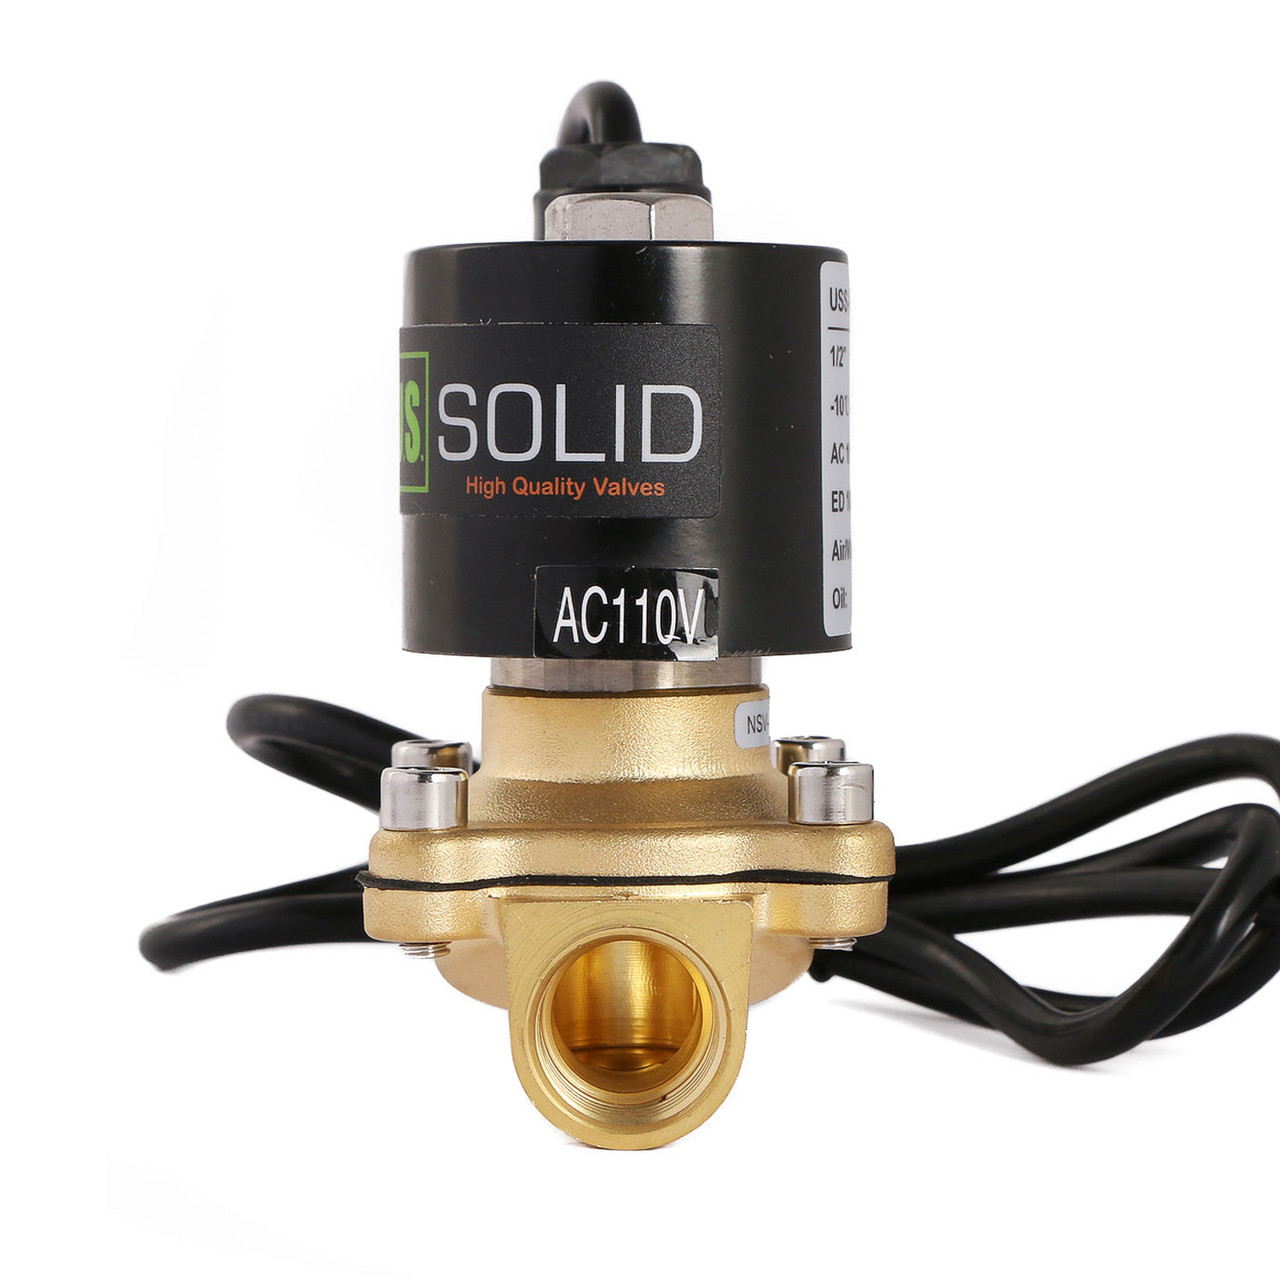 "U.S. Solid 1/2"" Brass Electric Solenoid Valve Underwater Valve 110V AC Normally Closed VITON Air Water Oil Fuel IP67"